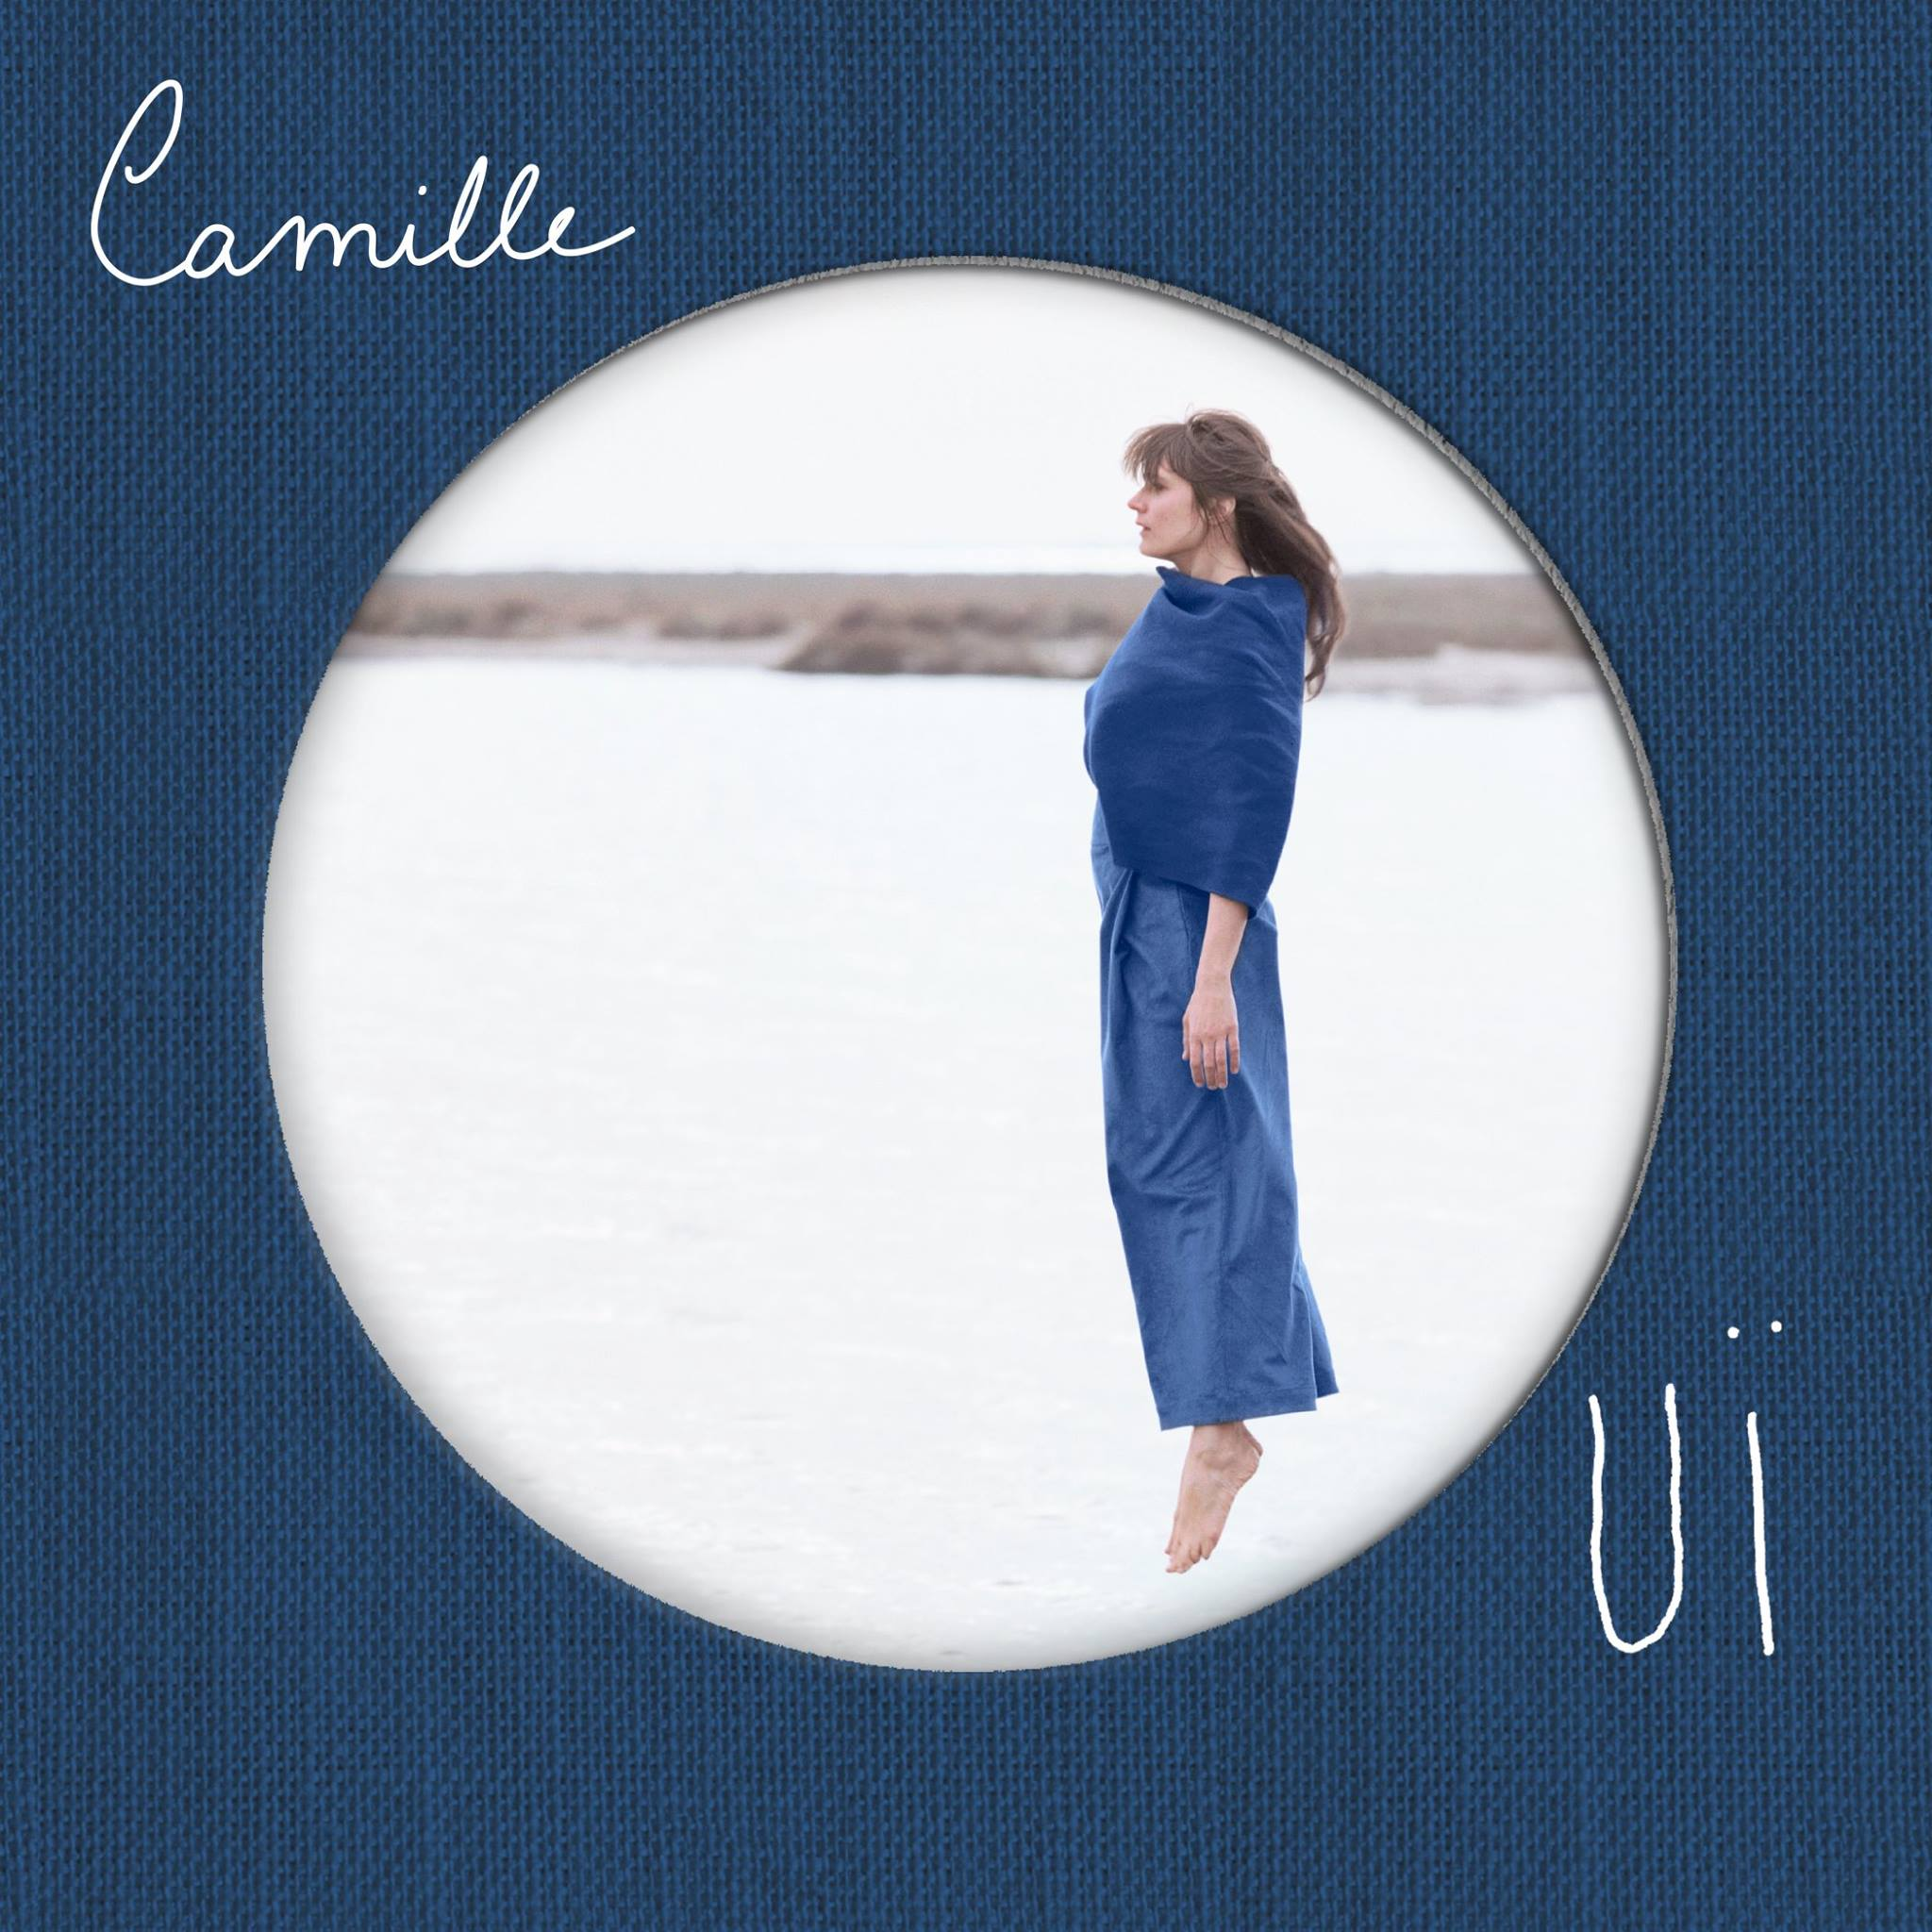 Camille JustMusic.fr